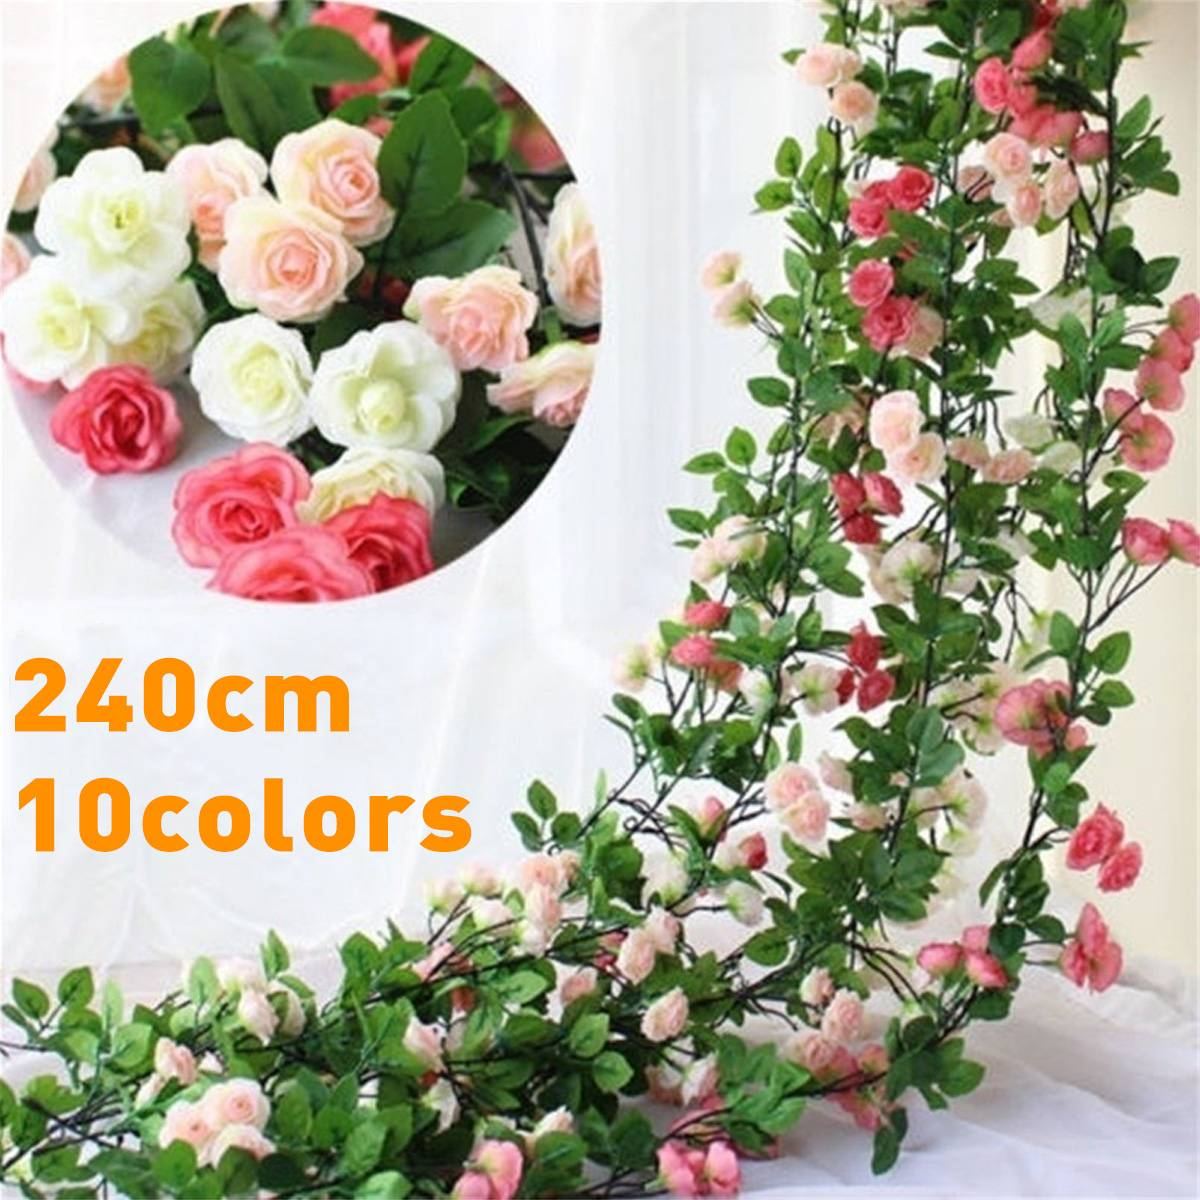 240cm Artificial Rose Flower Fake Hanging Decorative Roses Vine Plants Leaves Artificials Garland Flowers Wedding Wall Decor